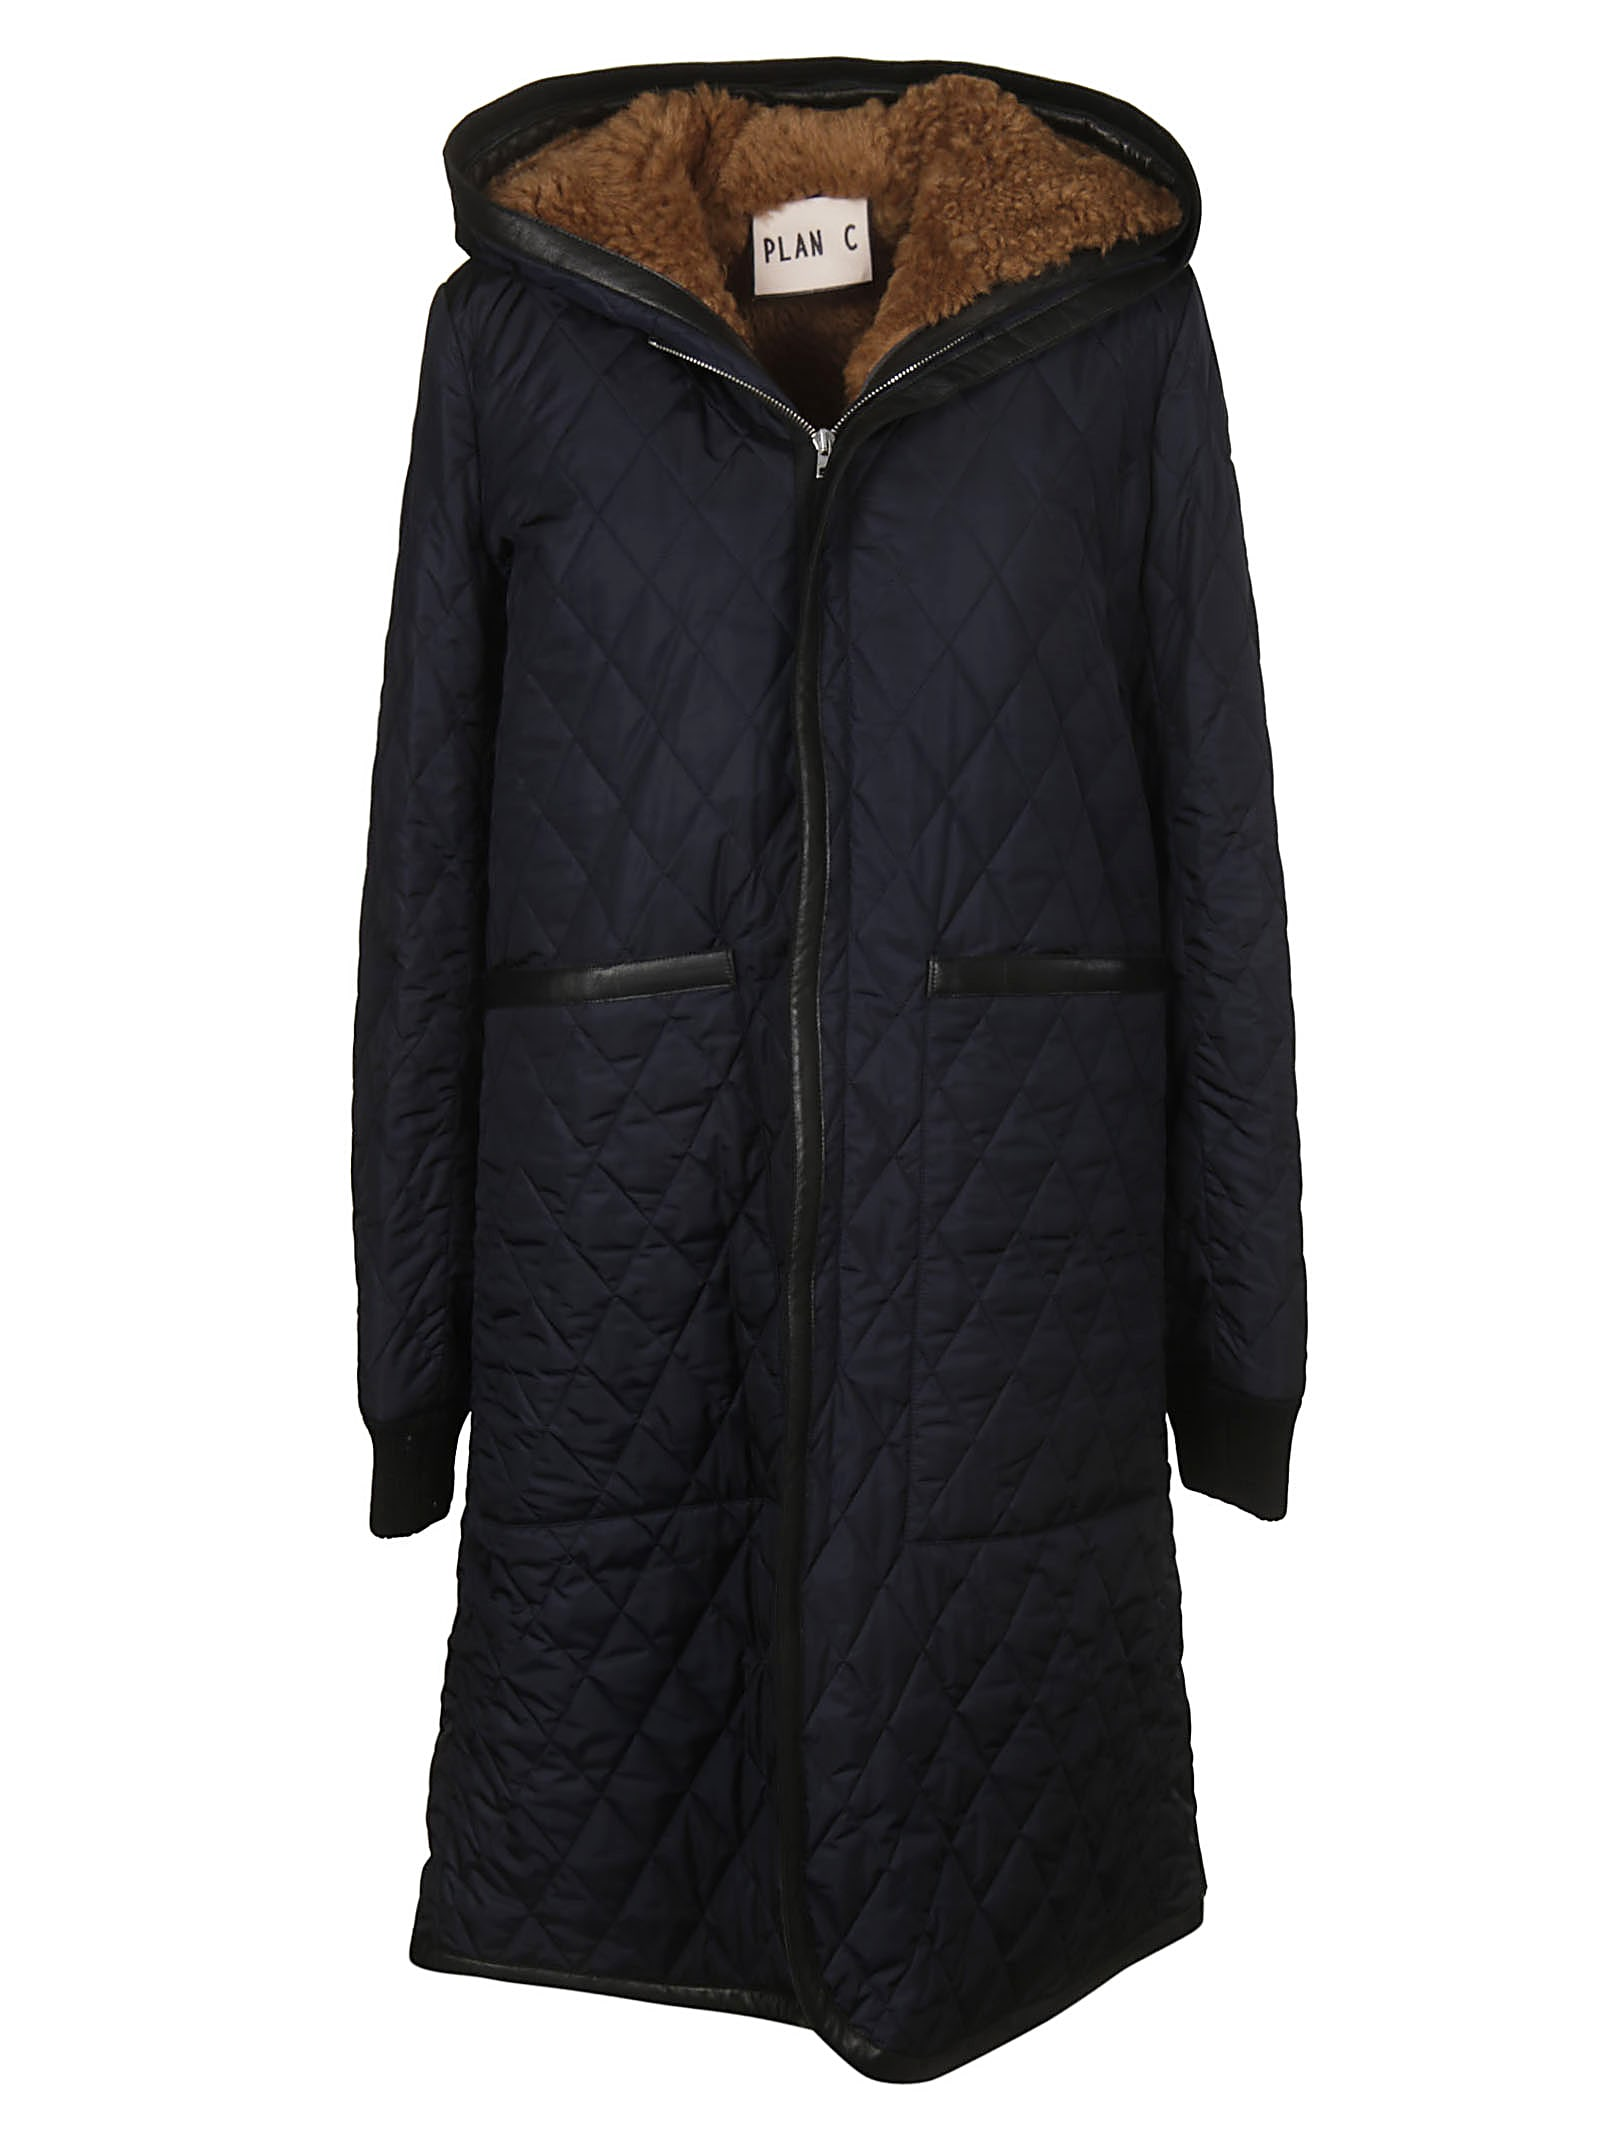 Plan C Quilted Coat